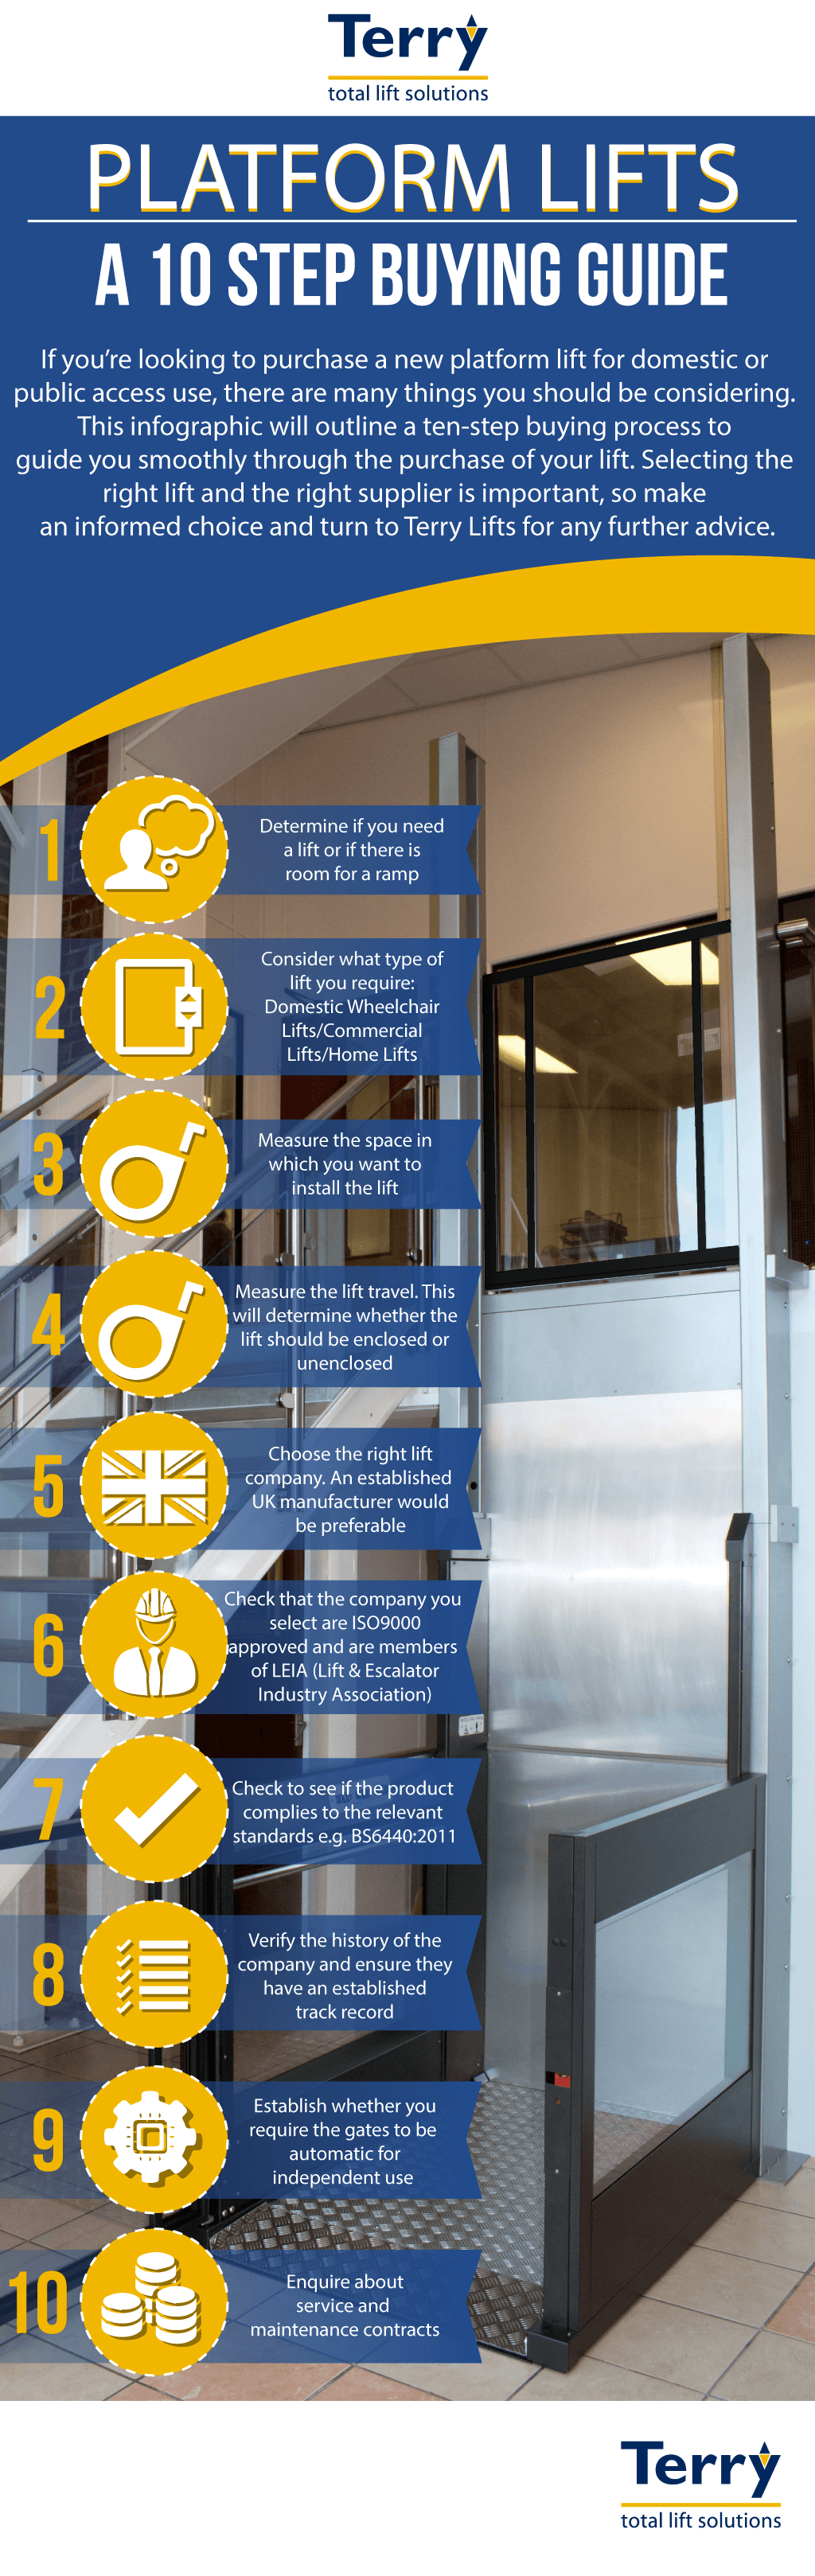 Platform Lifts – A 10 Step Buying Guide